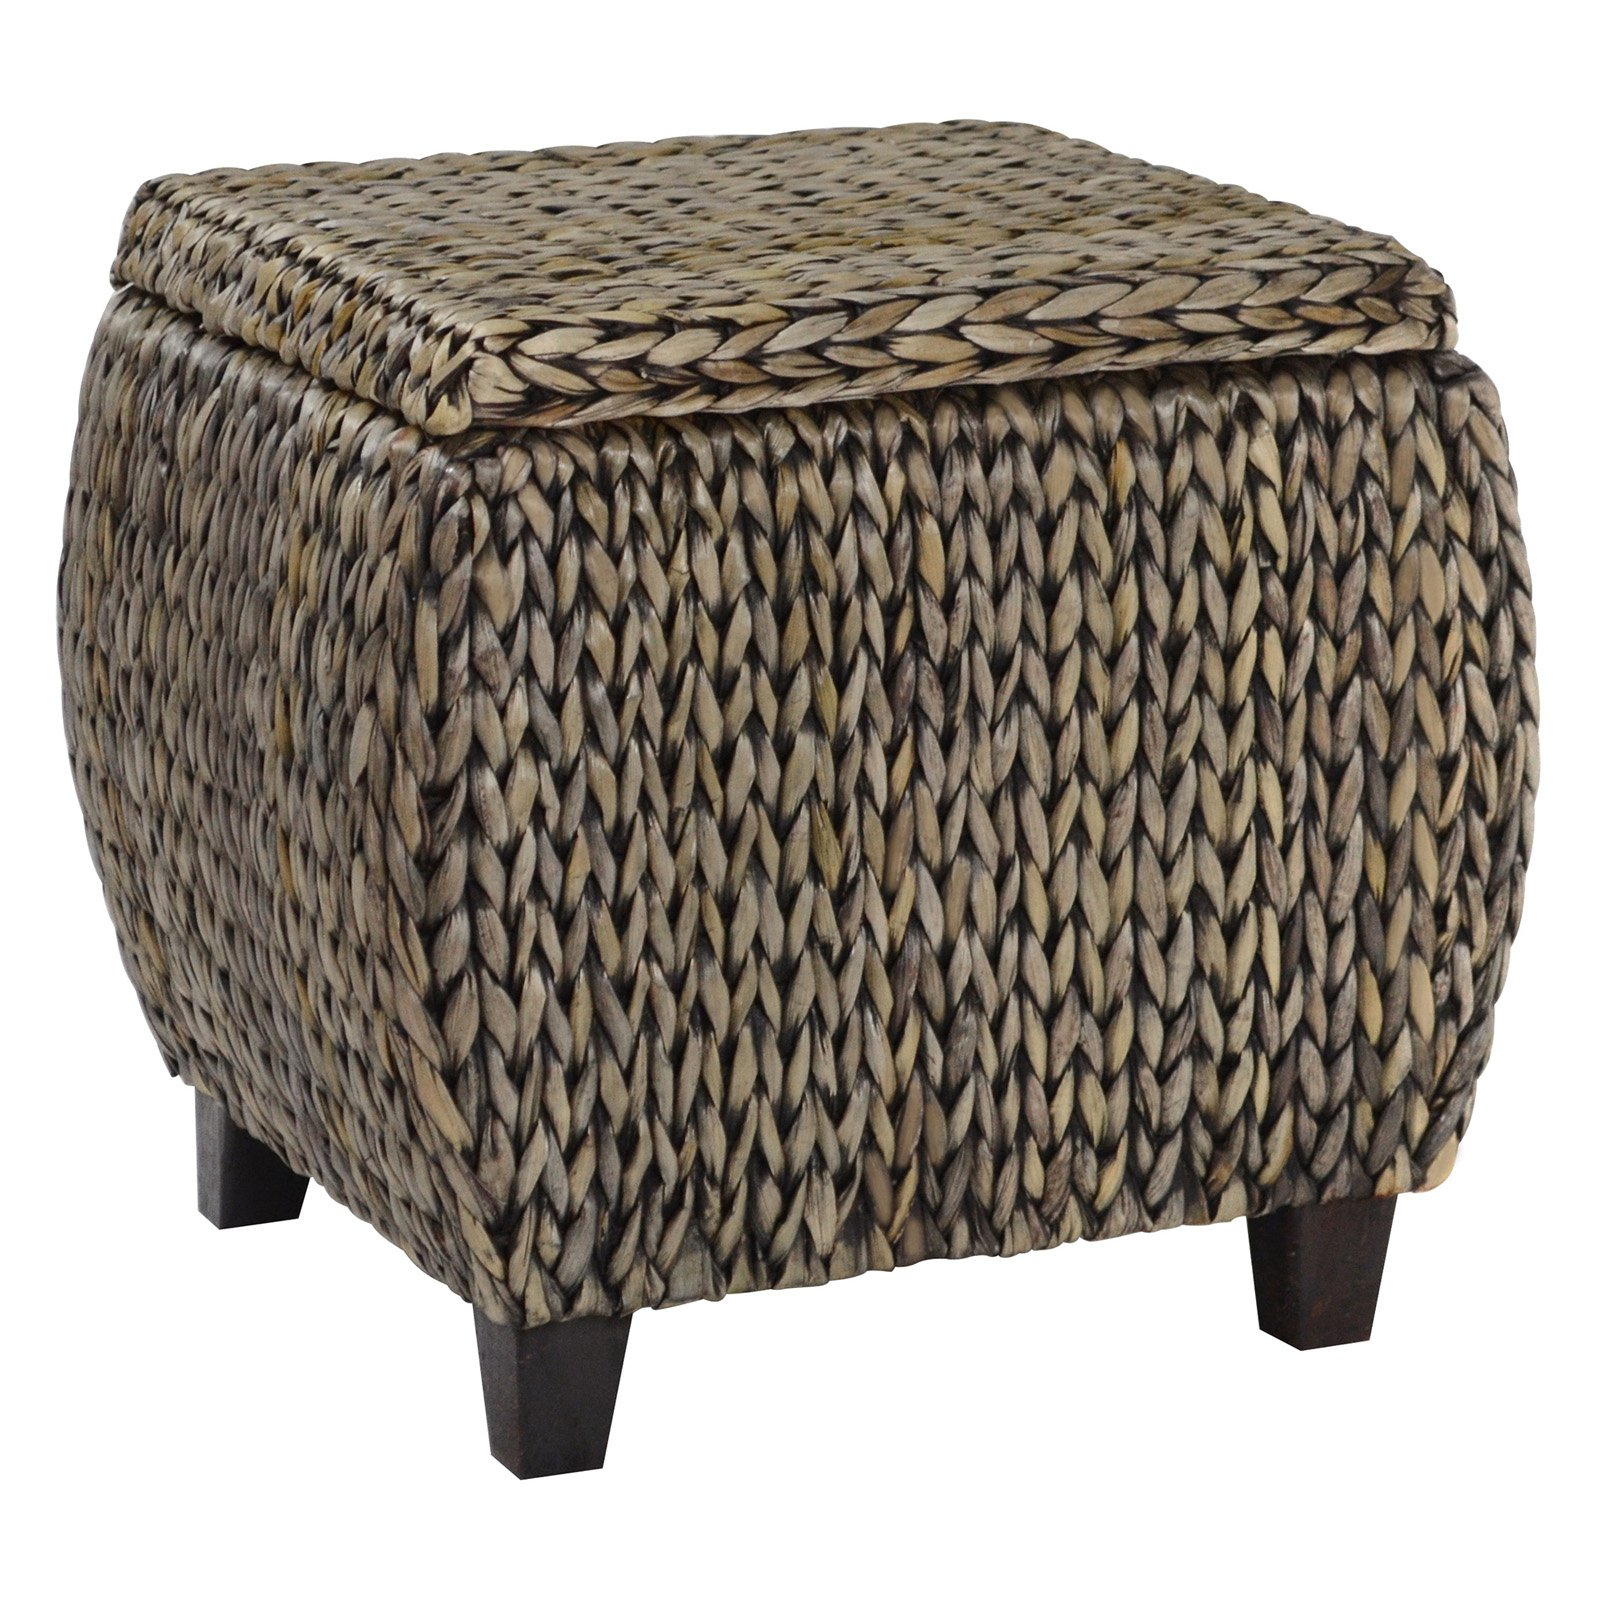 Gallerie Dcor Gallerie Decor Bali Breeze Round Storage Ottoman